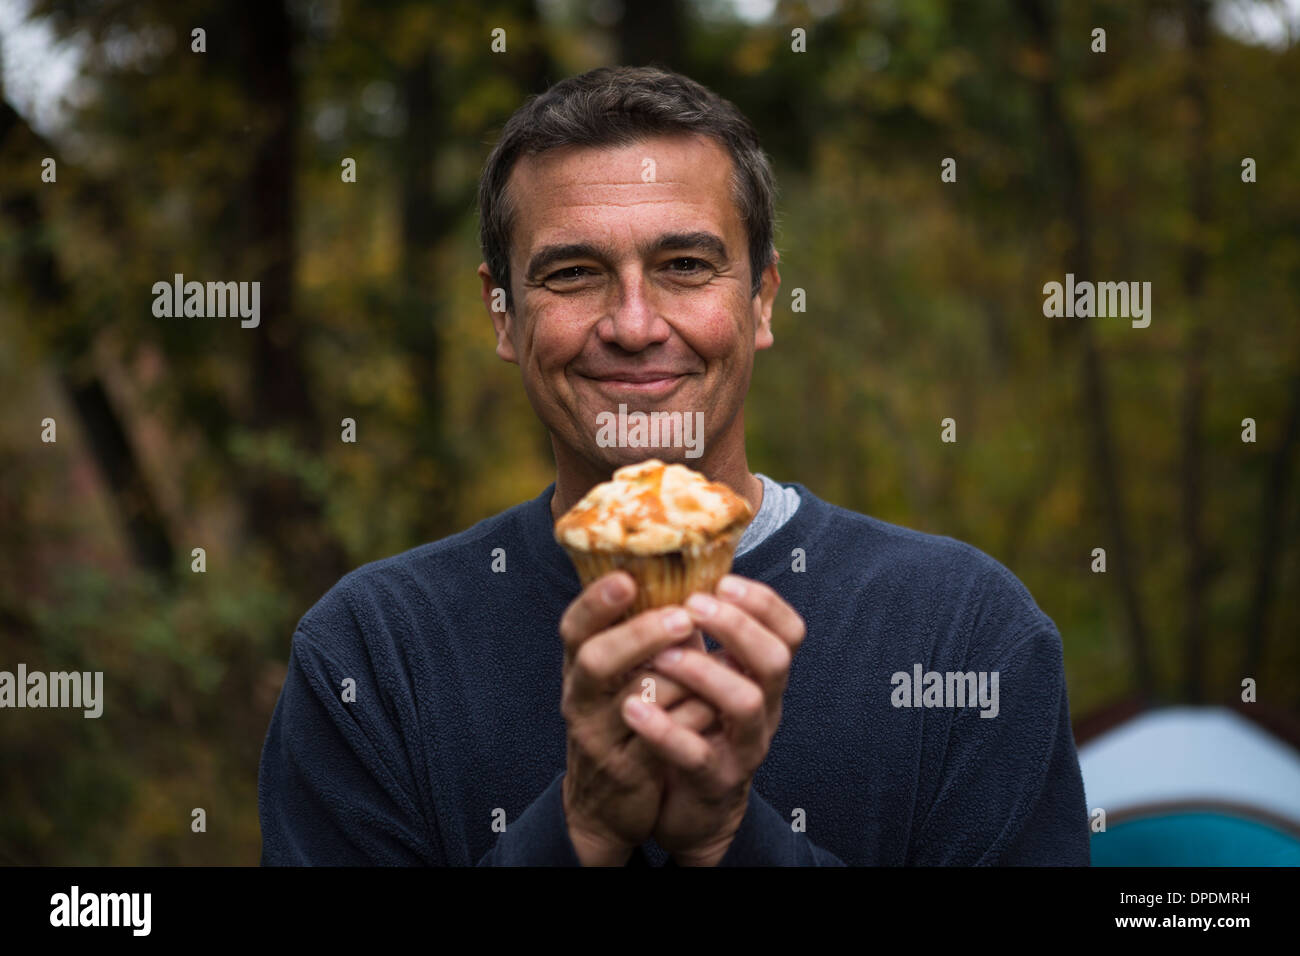 Mature man in forest holding cupcake - Stock Image